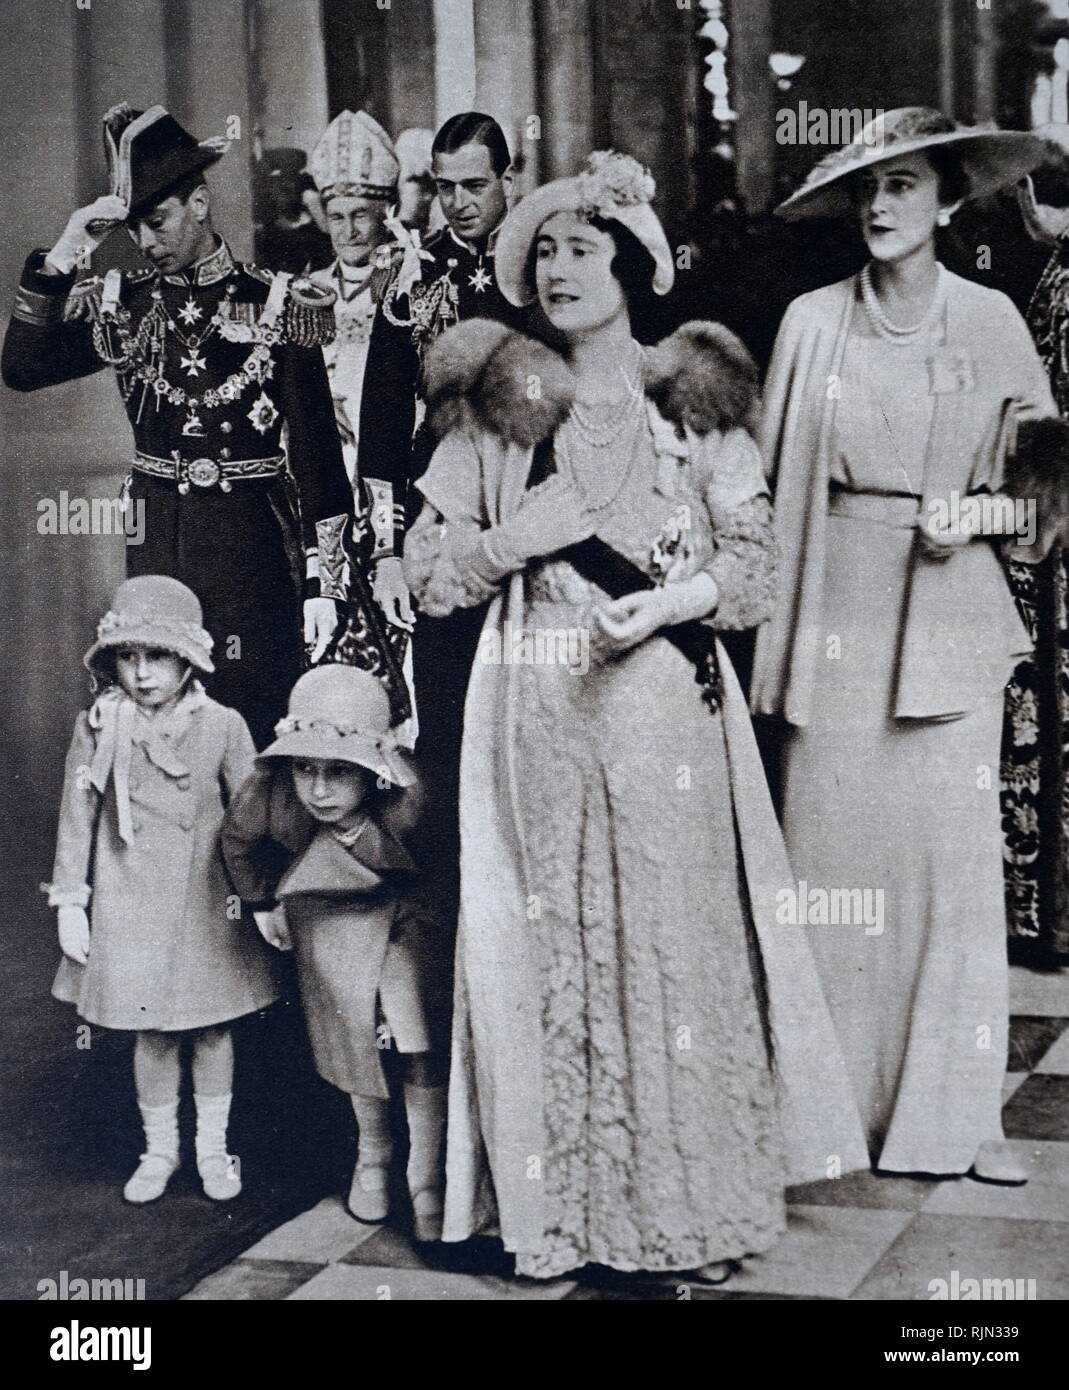 The Duke and Duchess of York, later King George VI and Queen Elizabeth, with Princess Elizabeth and Princess Margaret on 6 May 1935; leaving St Paul's Cathedral after the Jubilee Day service of Thanksgiving for King George Vand Queen Mary. The Duke and Duchess of Kent and the Bishop of London are also pictured - Stock Image